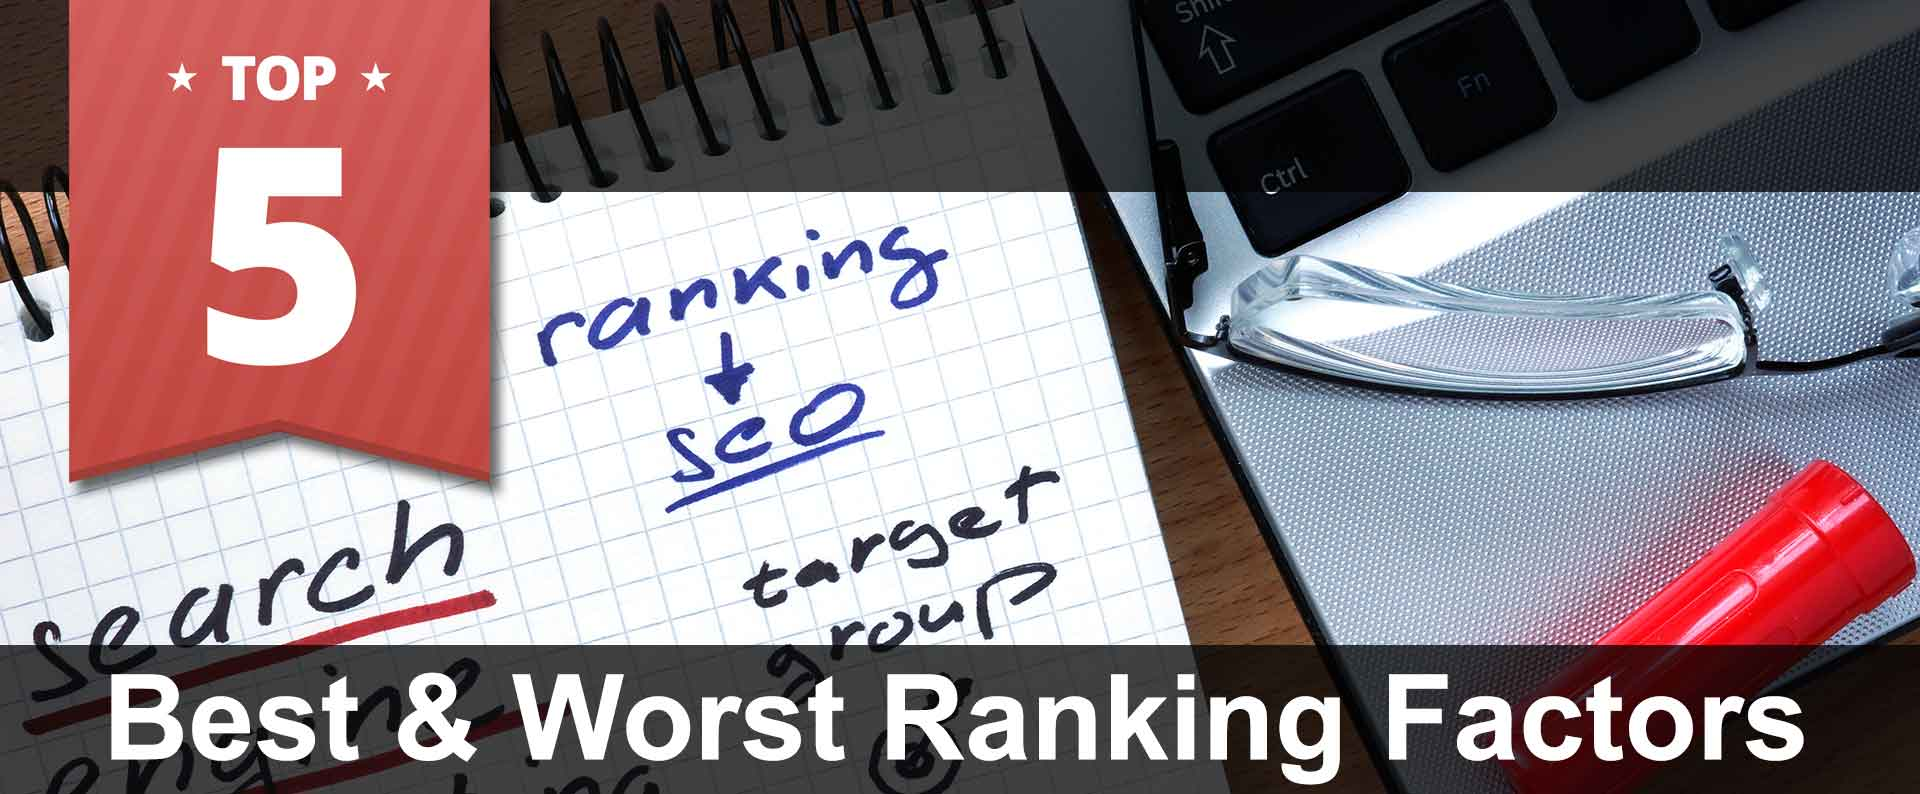 Expert Consensus on What Helps & What Hurts SEO